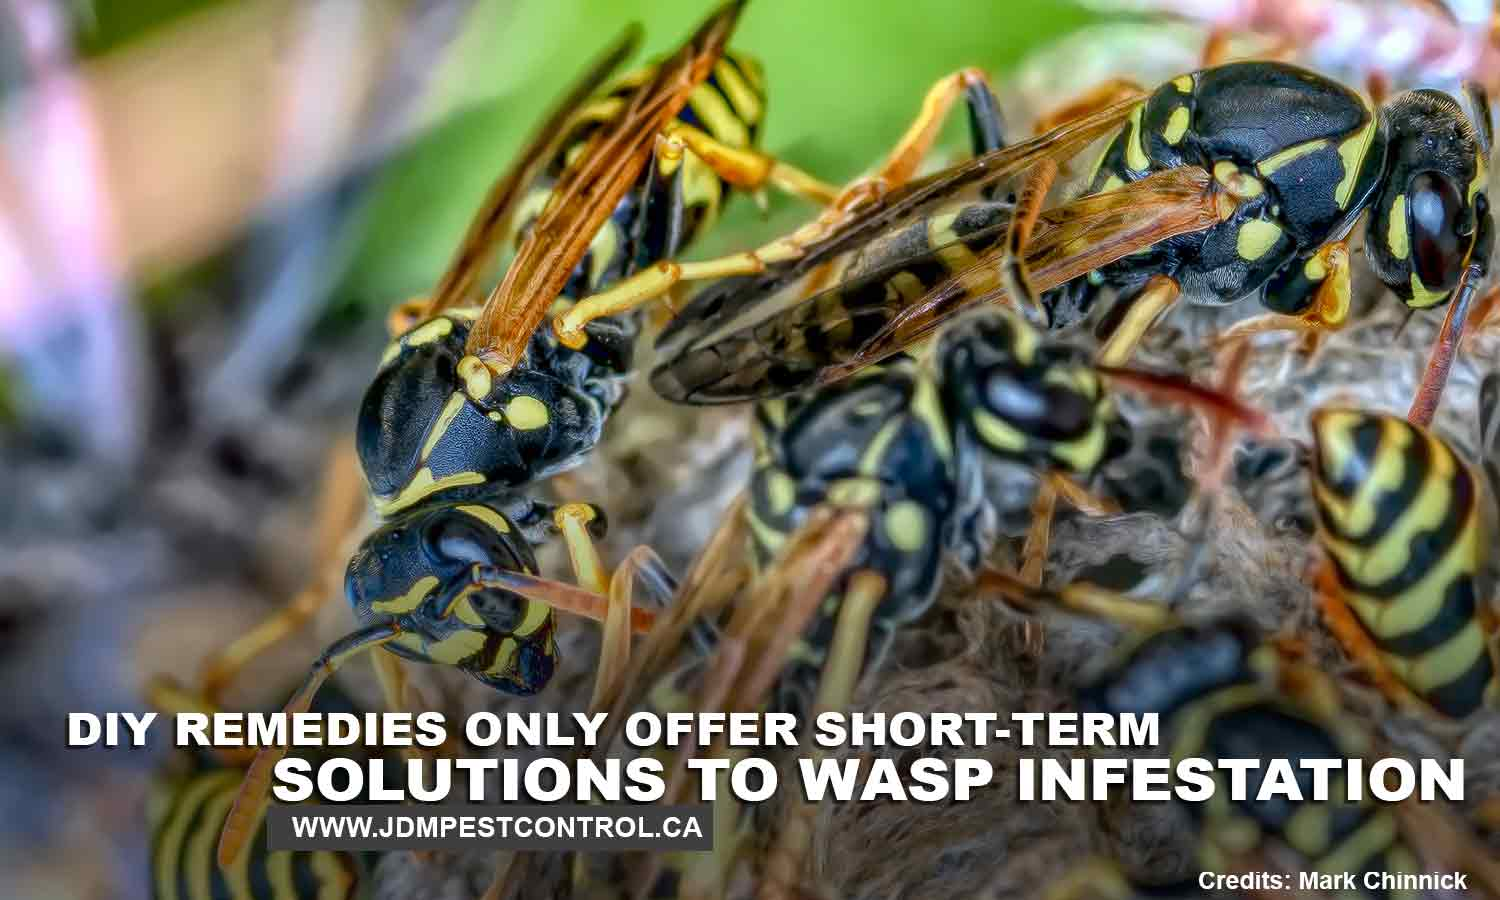 DIY remedies only offer short-term solutions to wasp infestation.